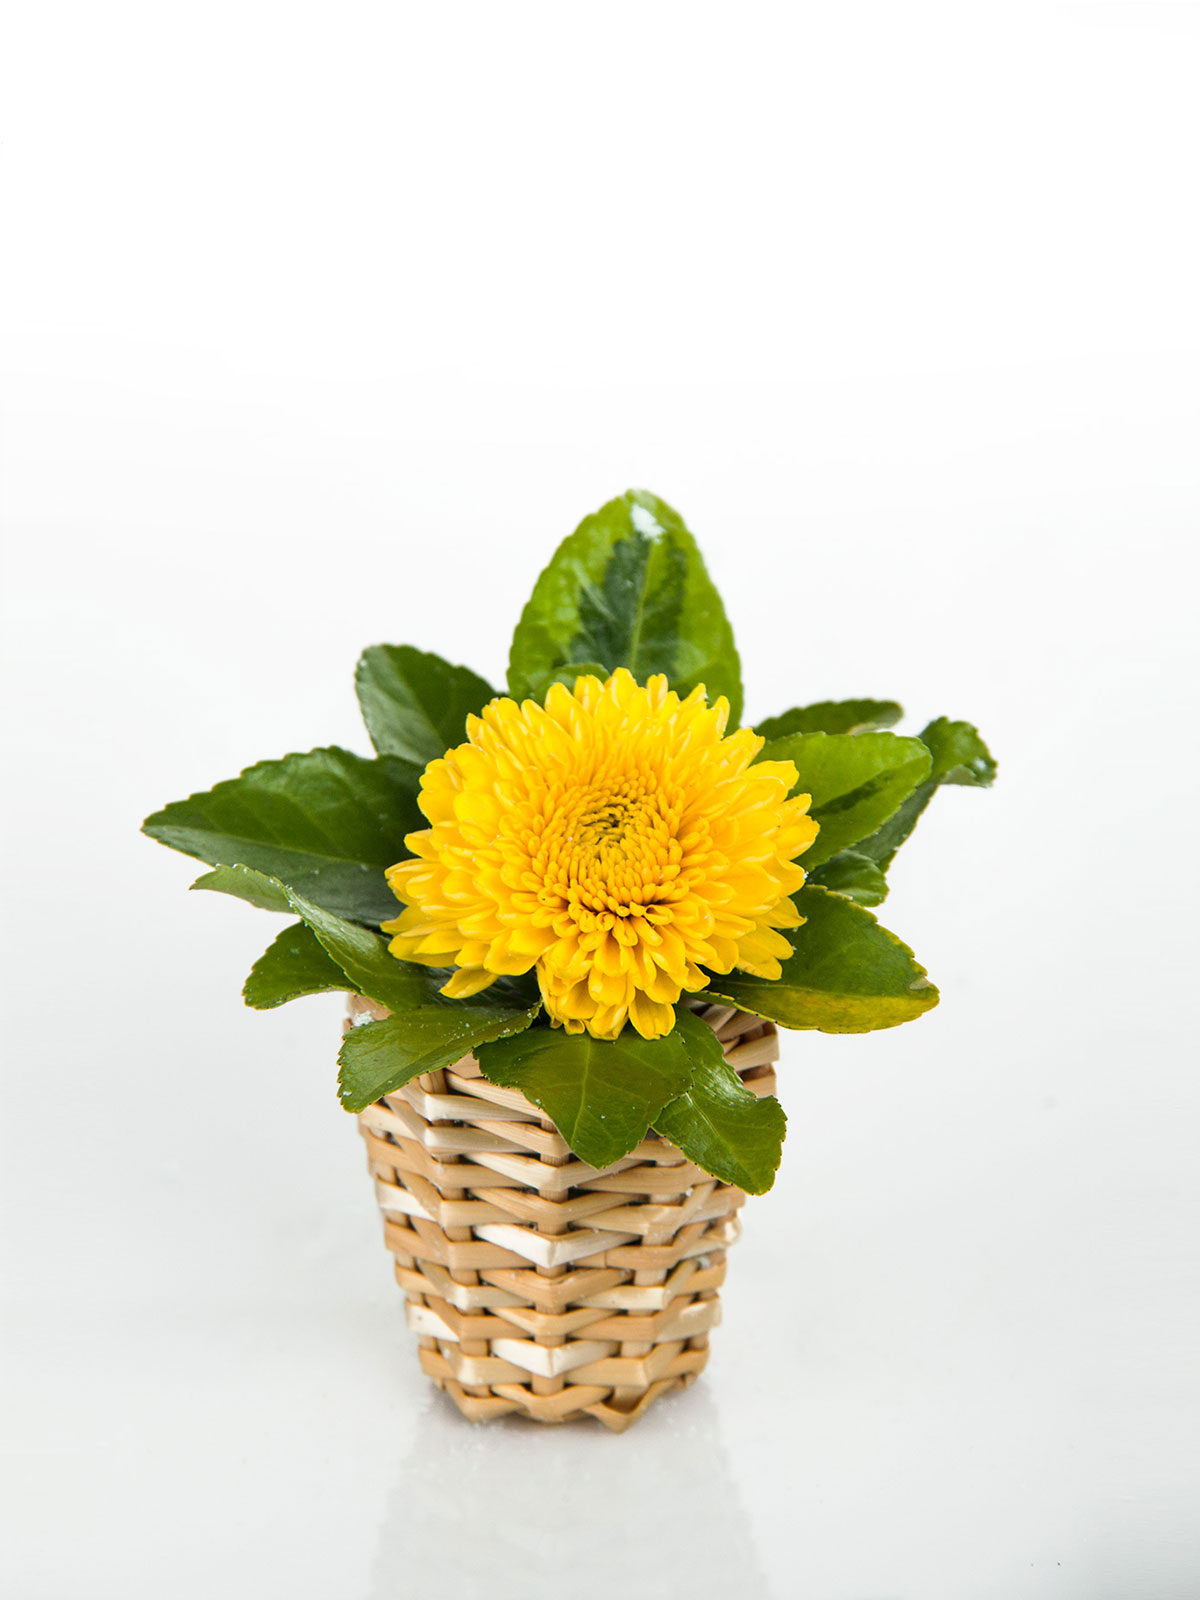 How to make pompomsunflower single bouquet flower boutiques in wild chrysanthemum taxa are floral seasonal plants or subshrubs they have alternately arranged leaves divided into leaflets with toothed or occasionally izmirmasajfo